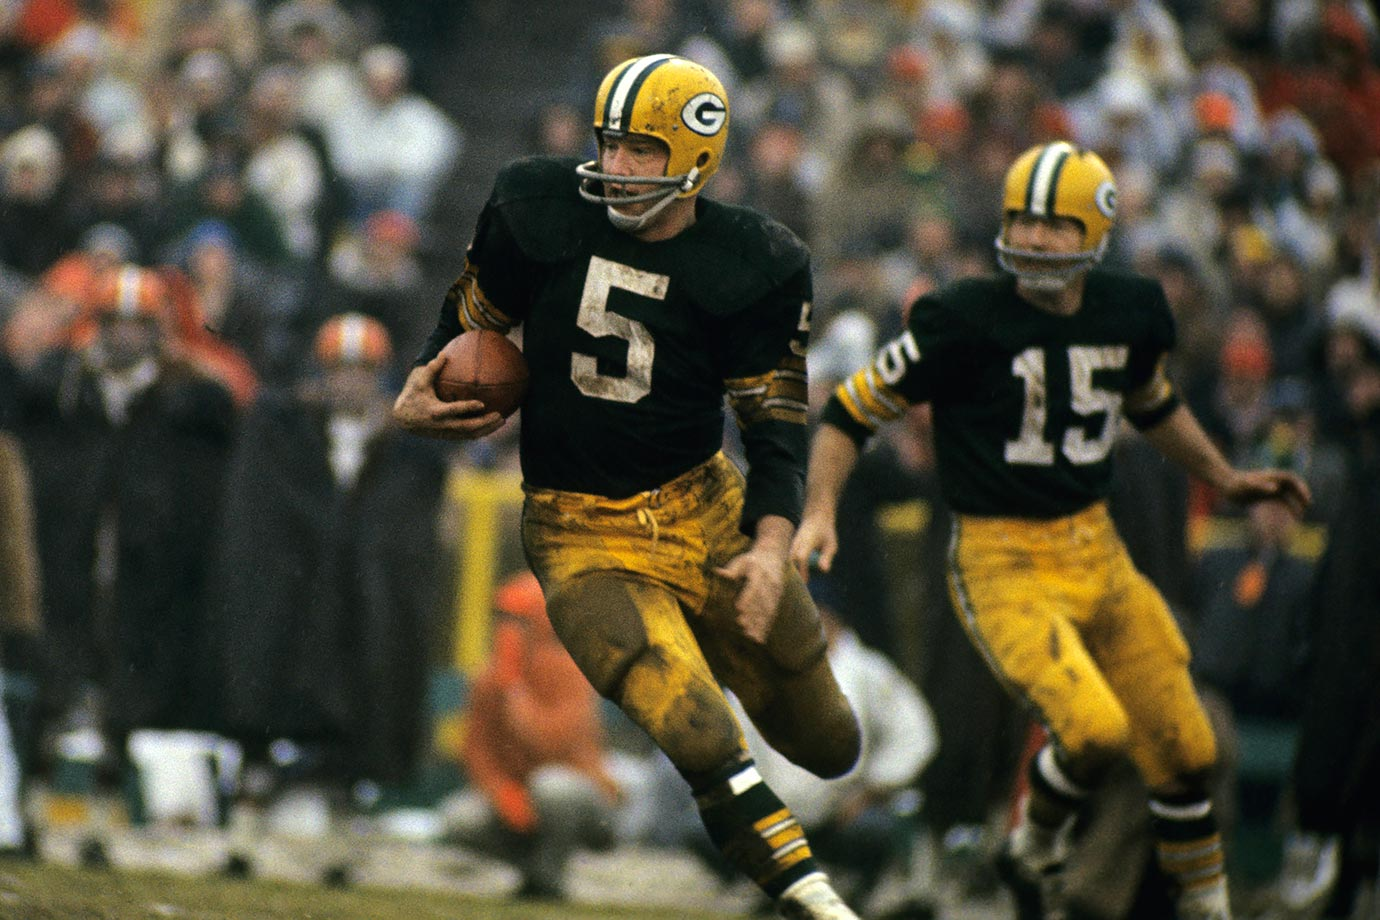 Jan. 2, 1966 (NFL Championship) — Green Bay Packers vs. Cleveland Browns